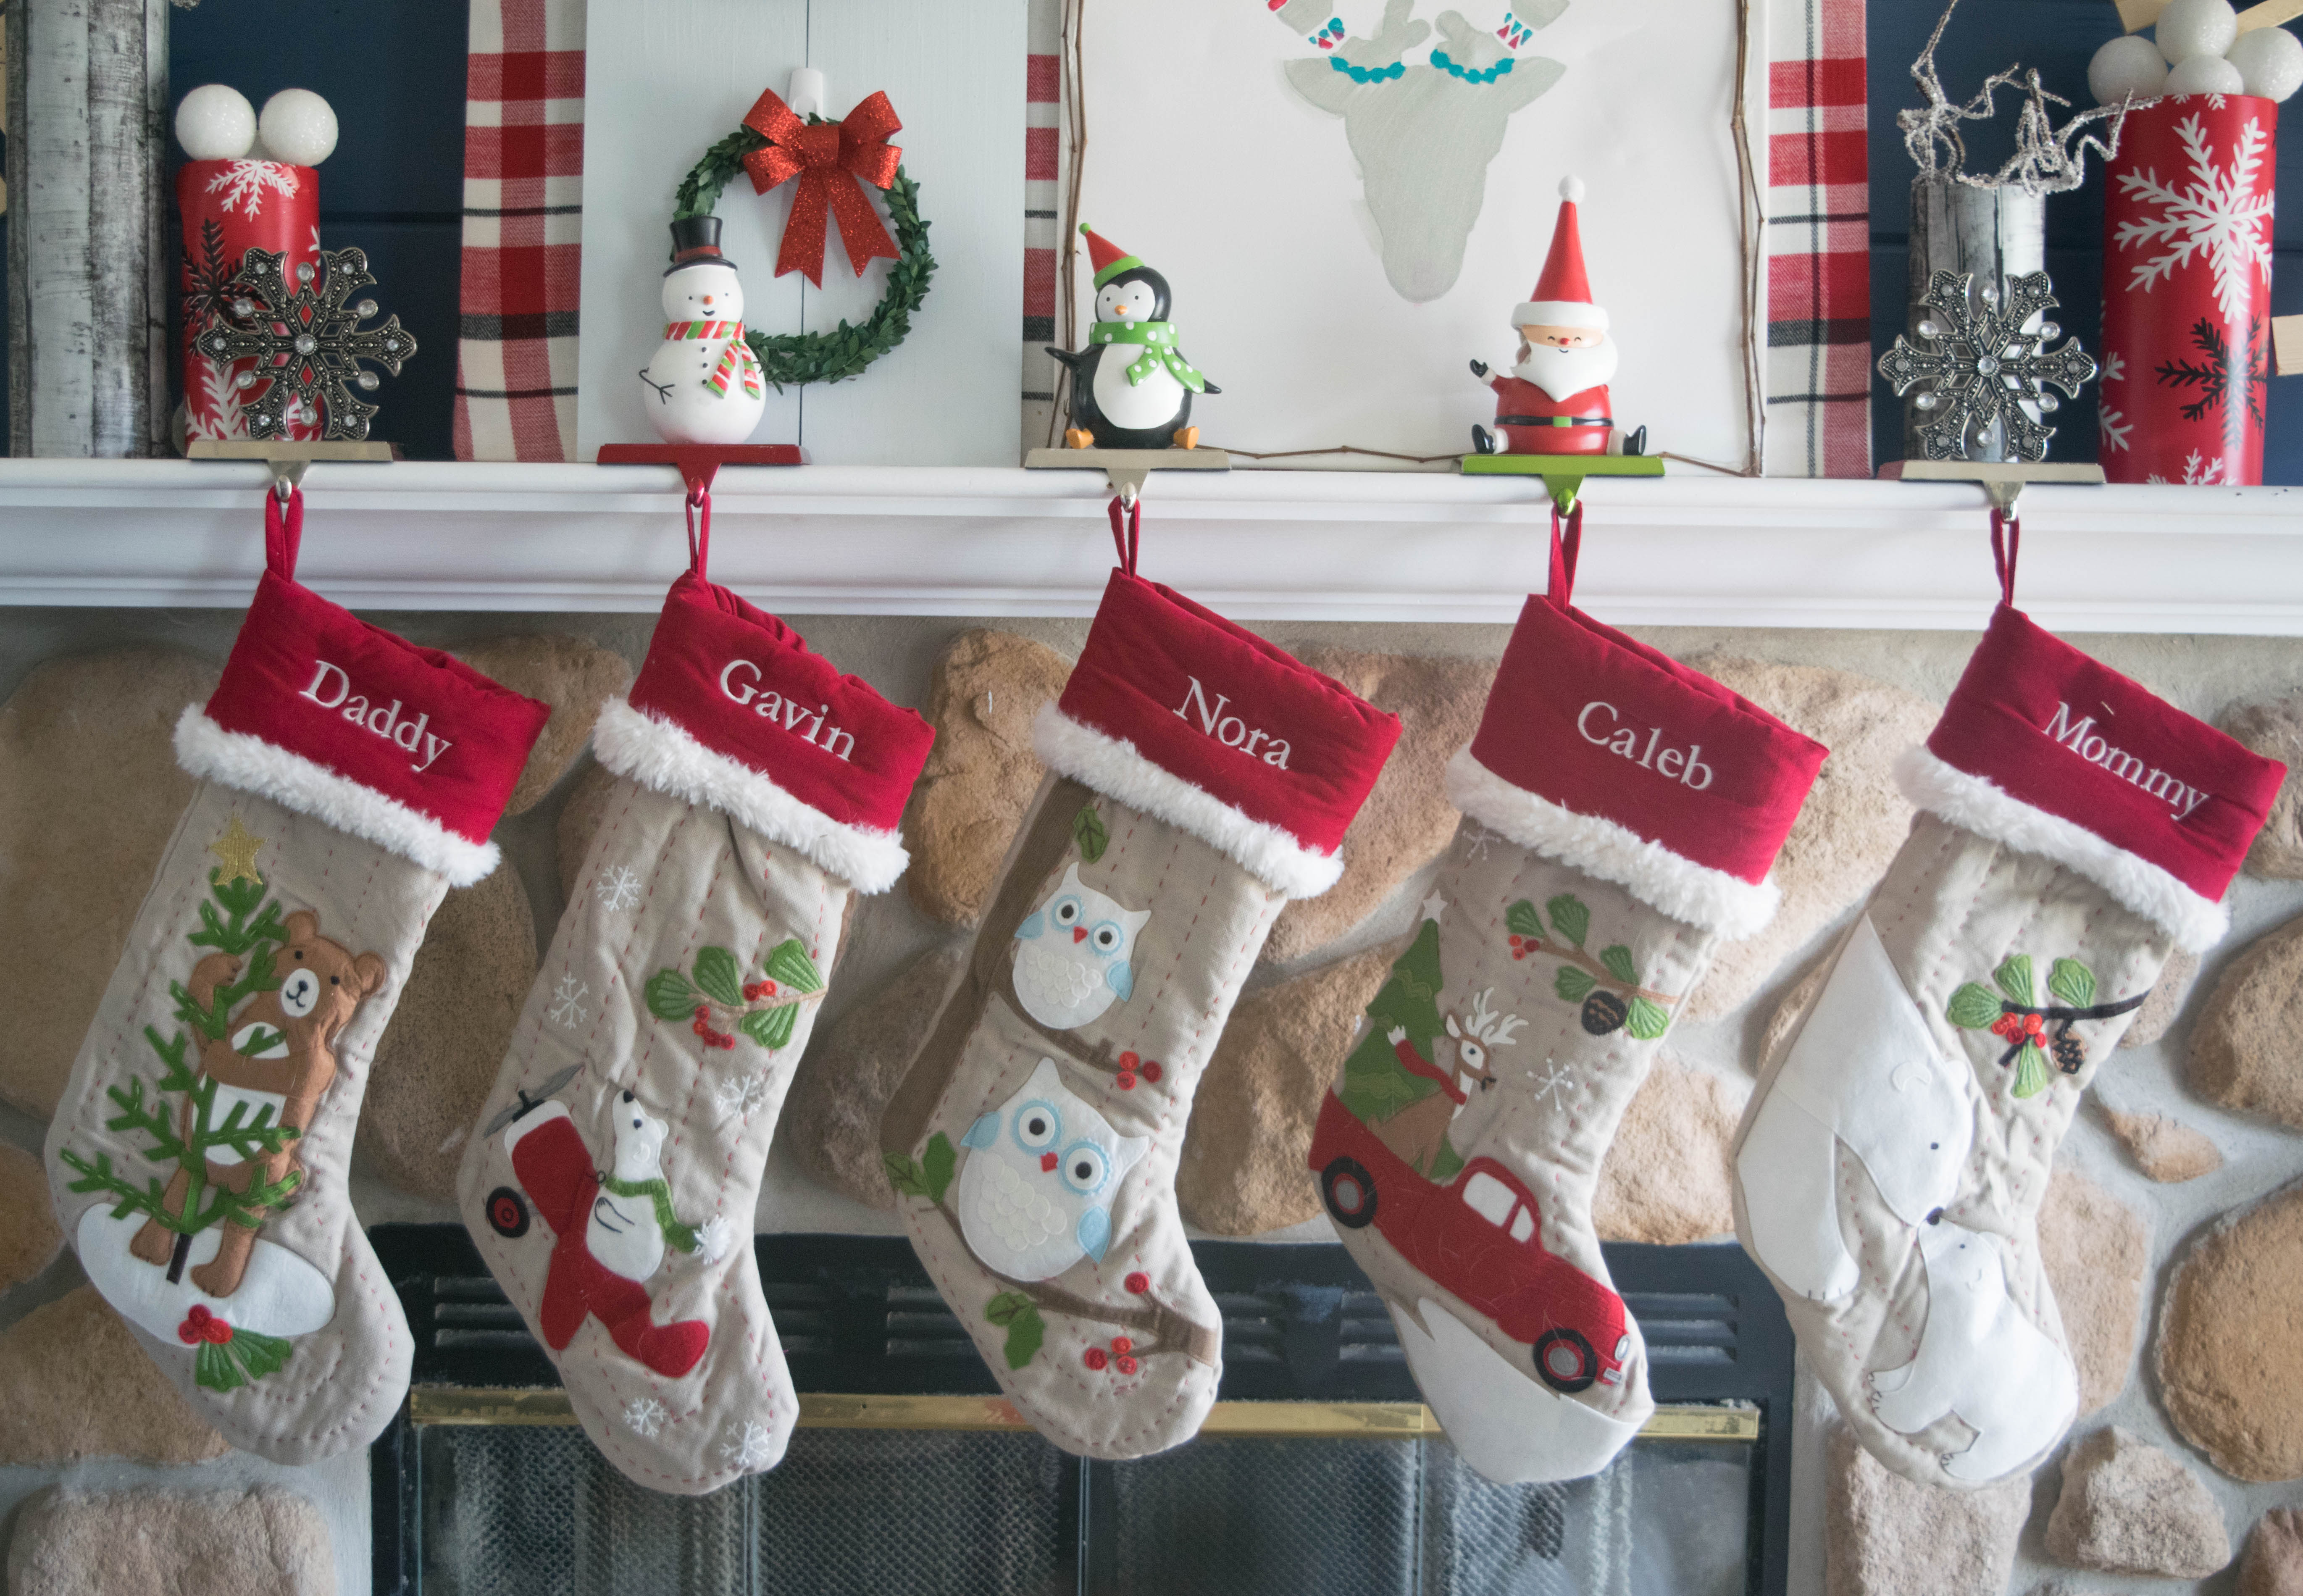 barns christmas starfish styles different stockings barn decorating stocking applique holiday z coastal pottery